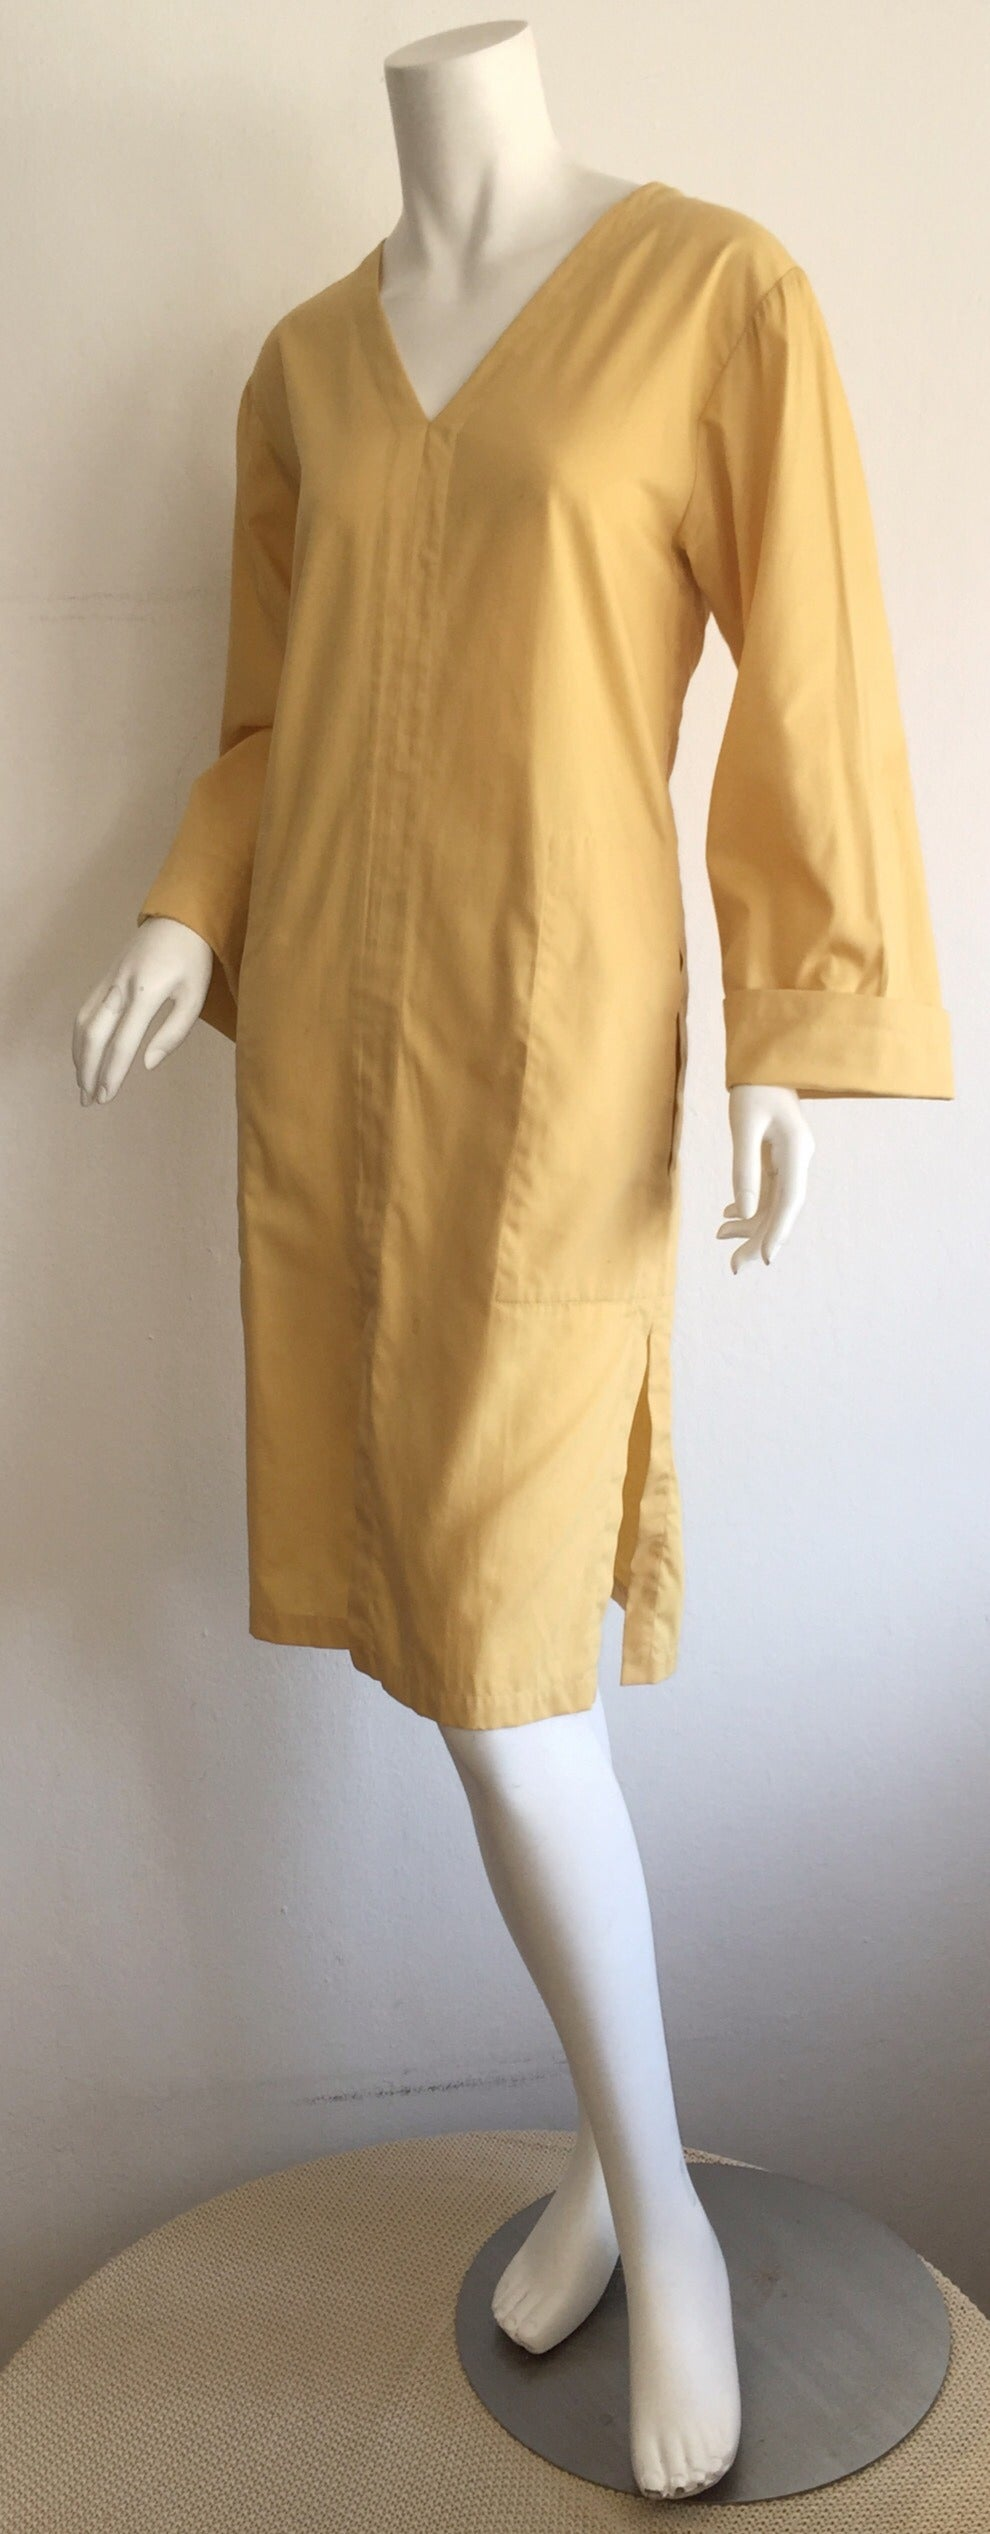 Vintage Yves Saint Laurent ' Rive Gauche ' Yellow Cotton Tunic Dress YSL In Excellent Condition For Sale In San Francisco, CA